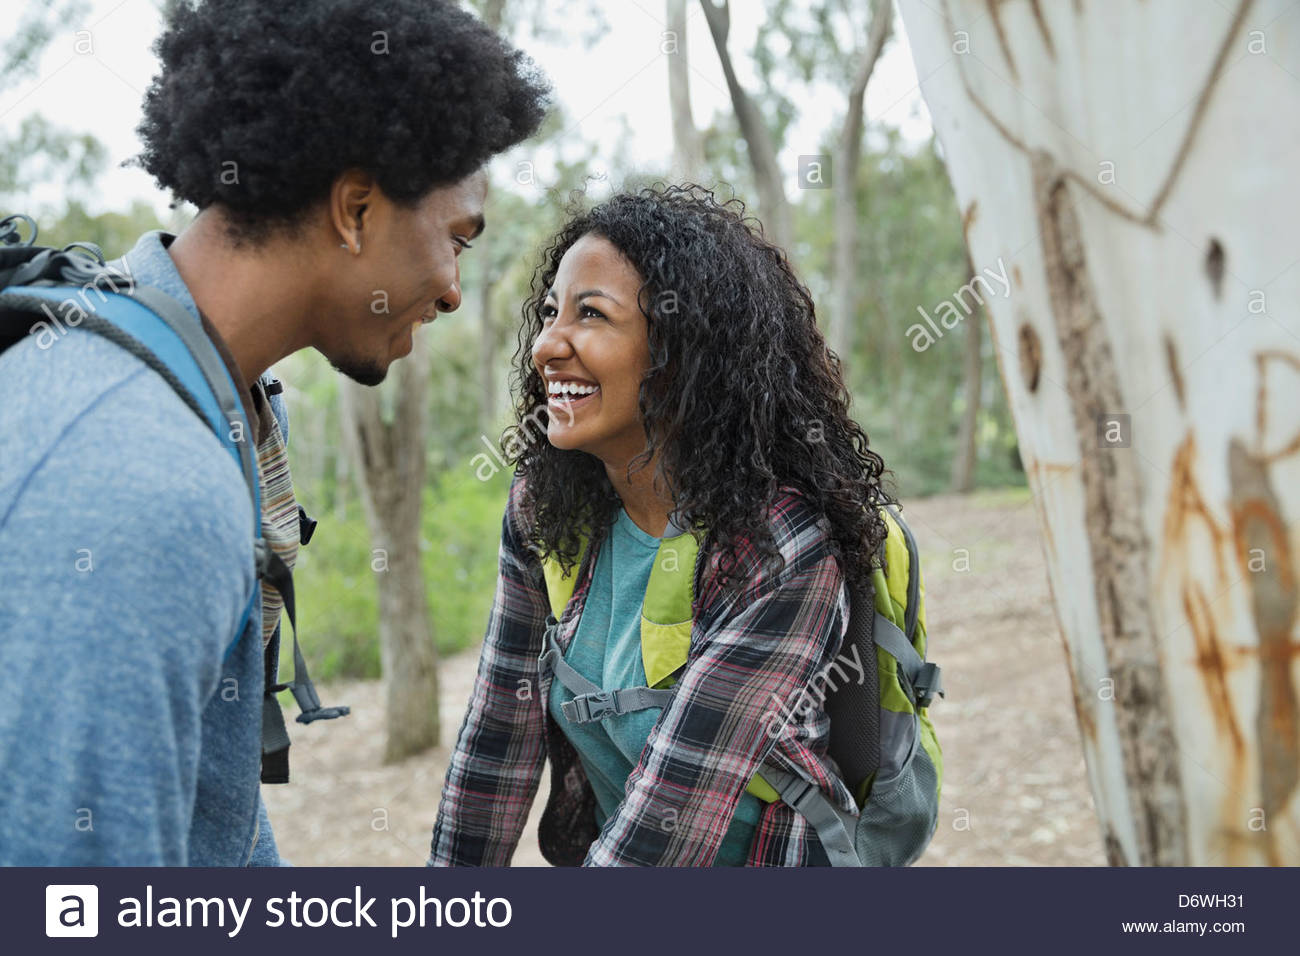 Happy romantic couple looking at each other in forest Stock Photo